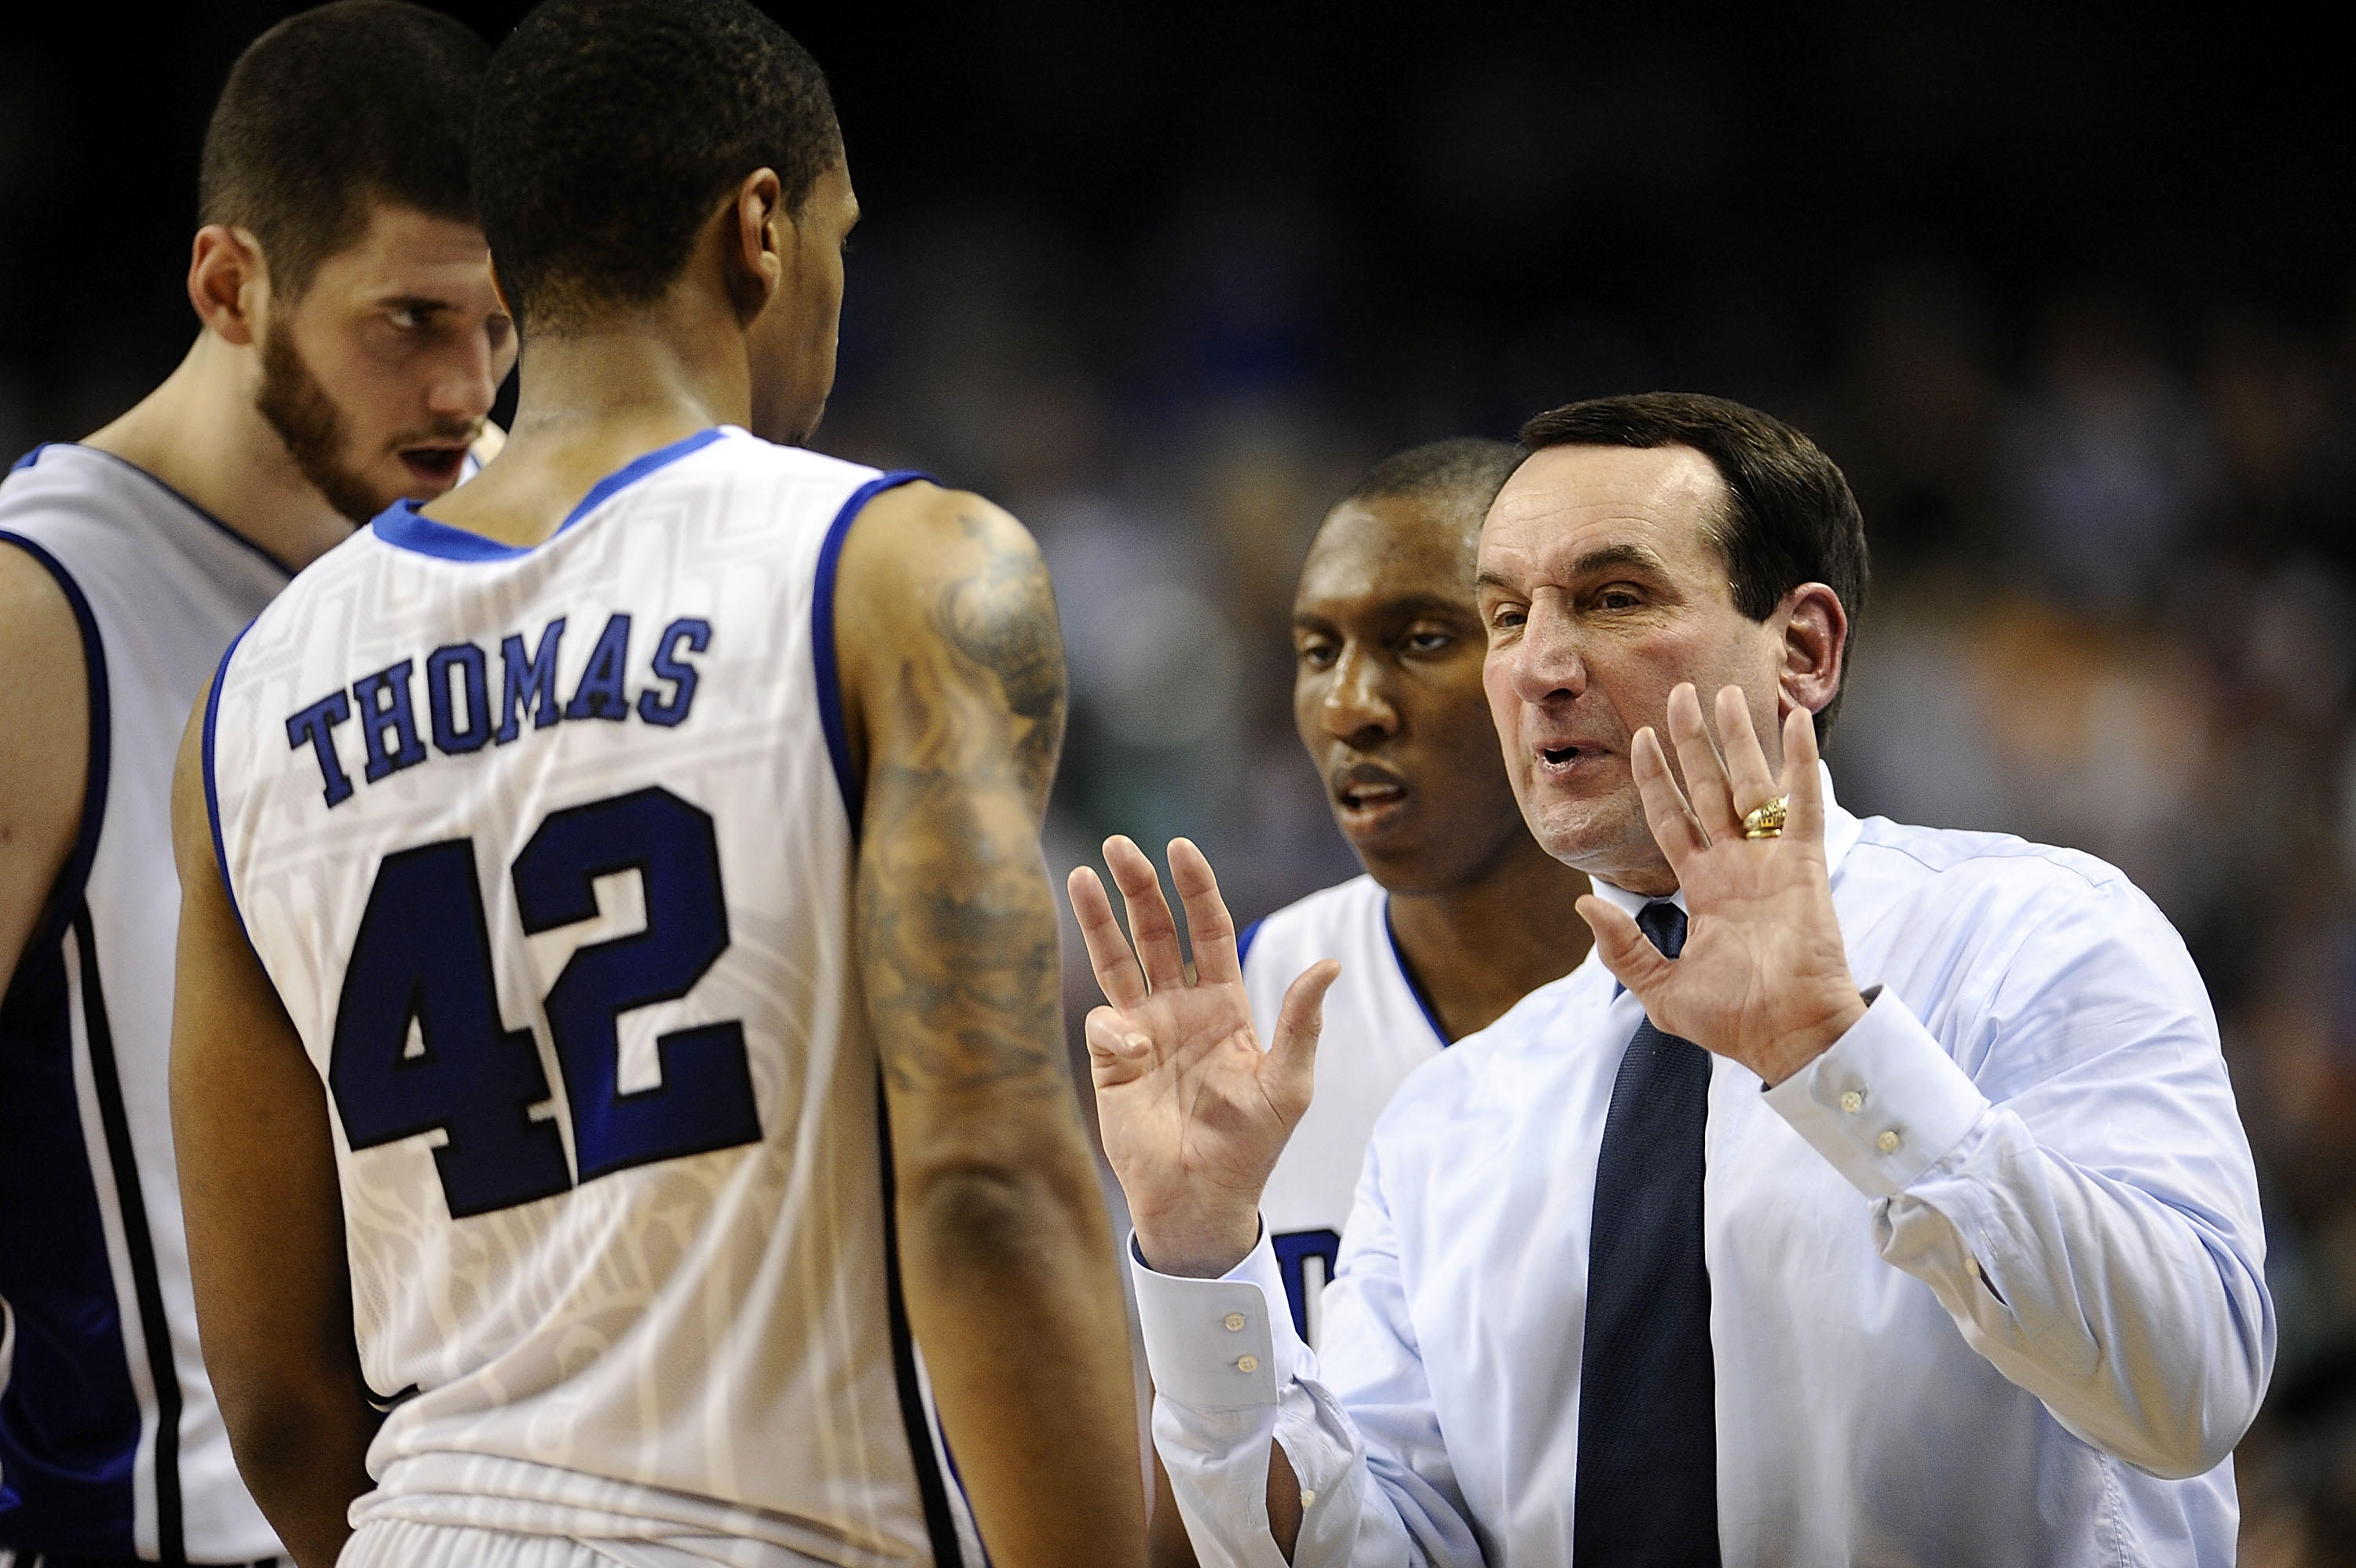 GREENSBORO, NC - MARCH 13:  Mike Krzyzewski, head coach of the Duke Blue Devils talks to his team against the University of Miami Hurricanes in their semifinal game in the 2010 ACC Men's Basketball Tournament at the Greensboro Coliseum on on March 13, 201